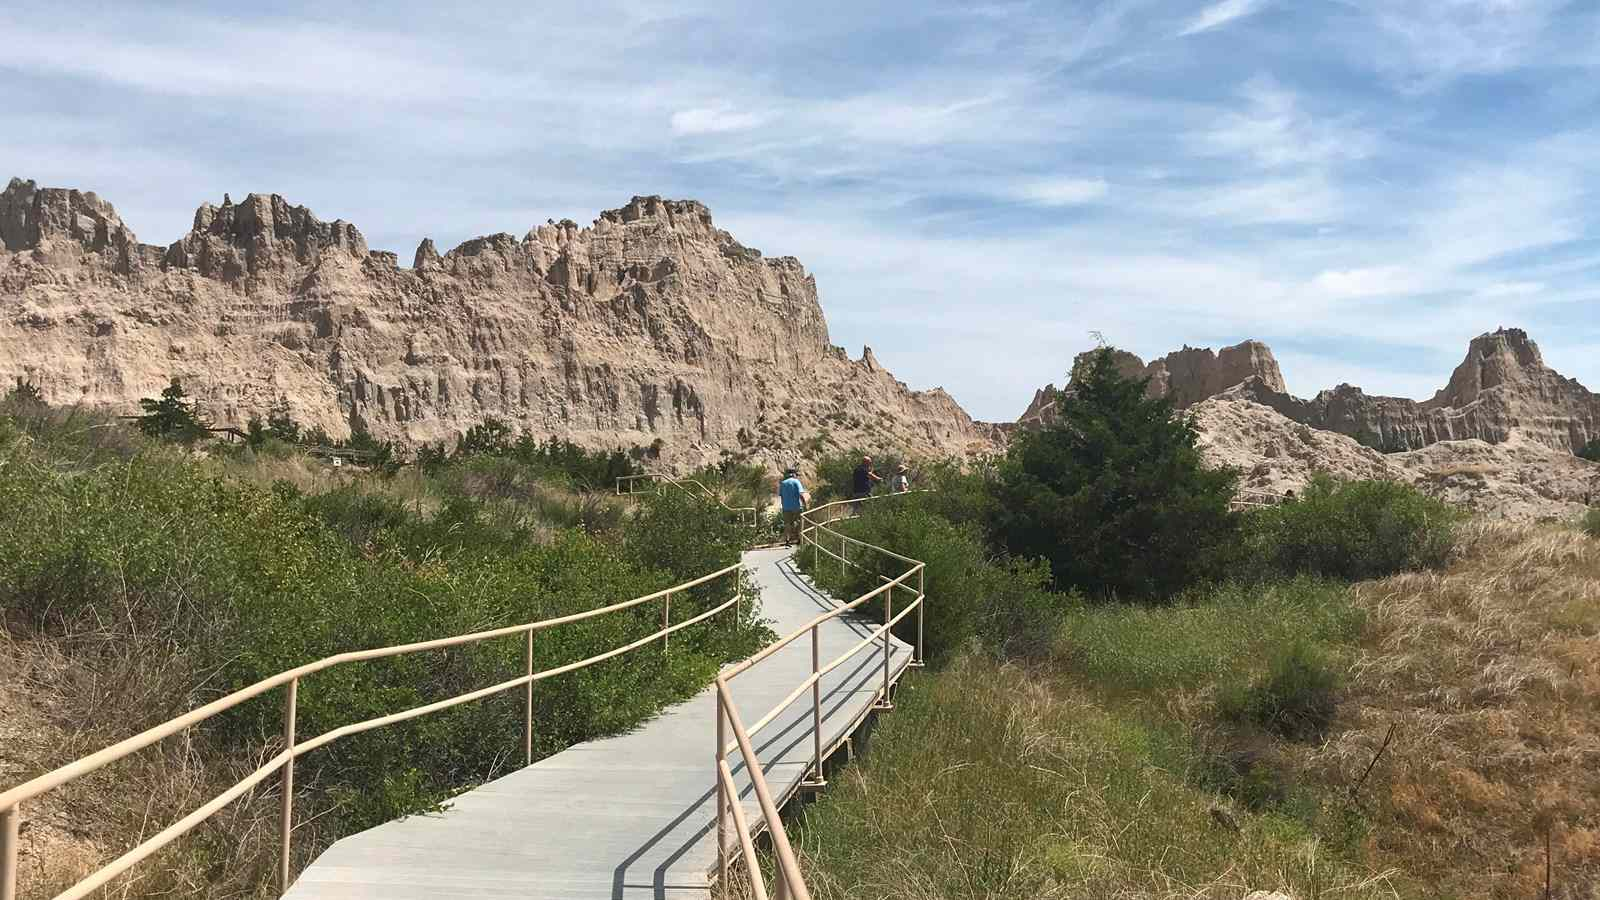 boardwalk trail through grass in Badlands national park with a person in the distance